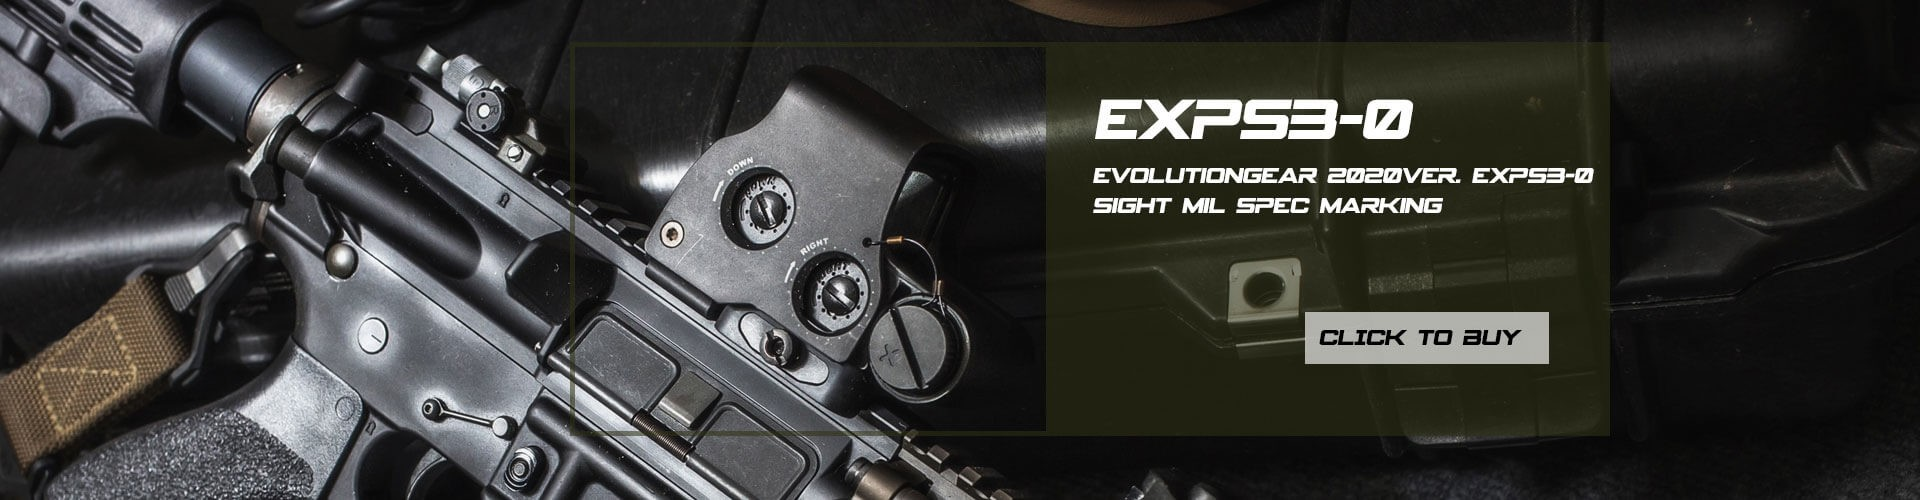 EvolutionGear 2020Ver. EXPS3-0 Sight Mil Spec Marking